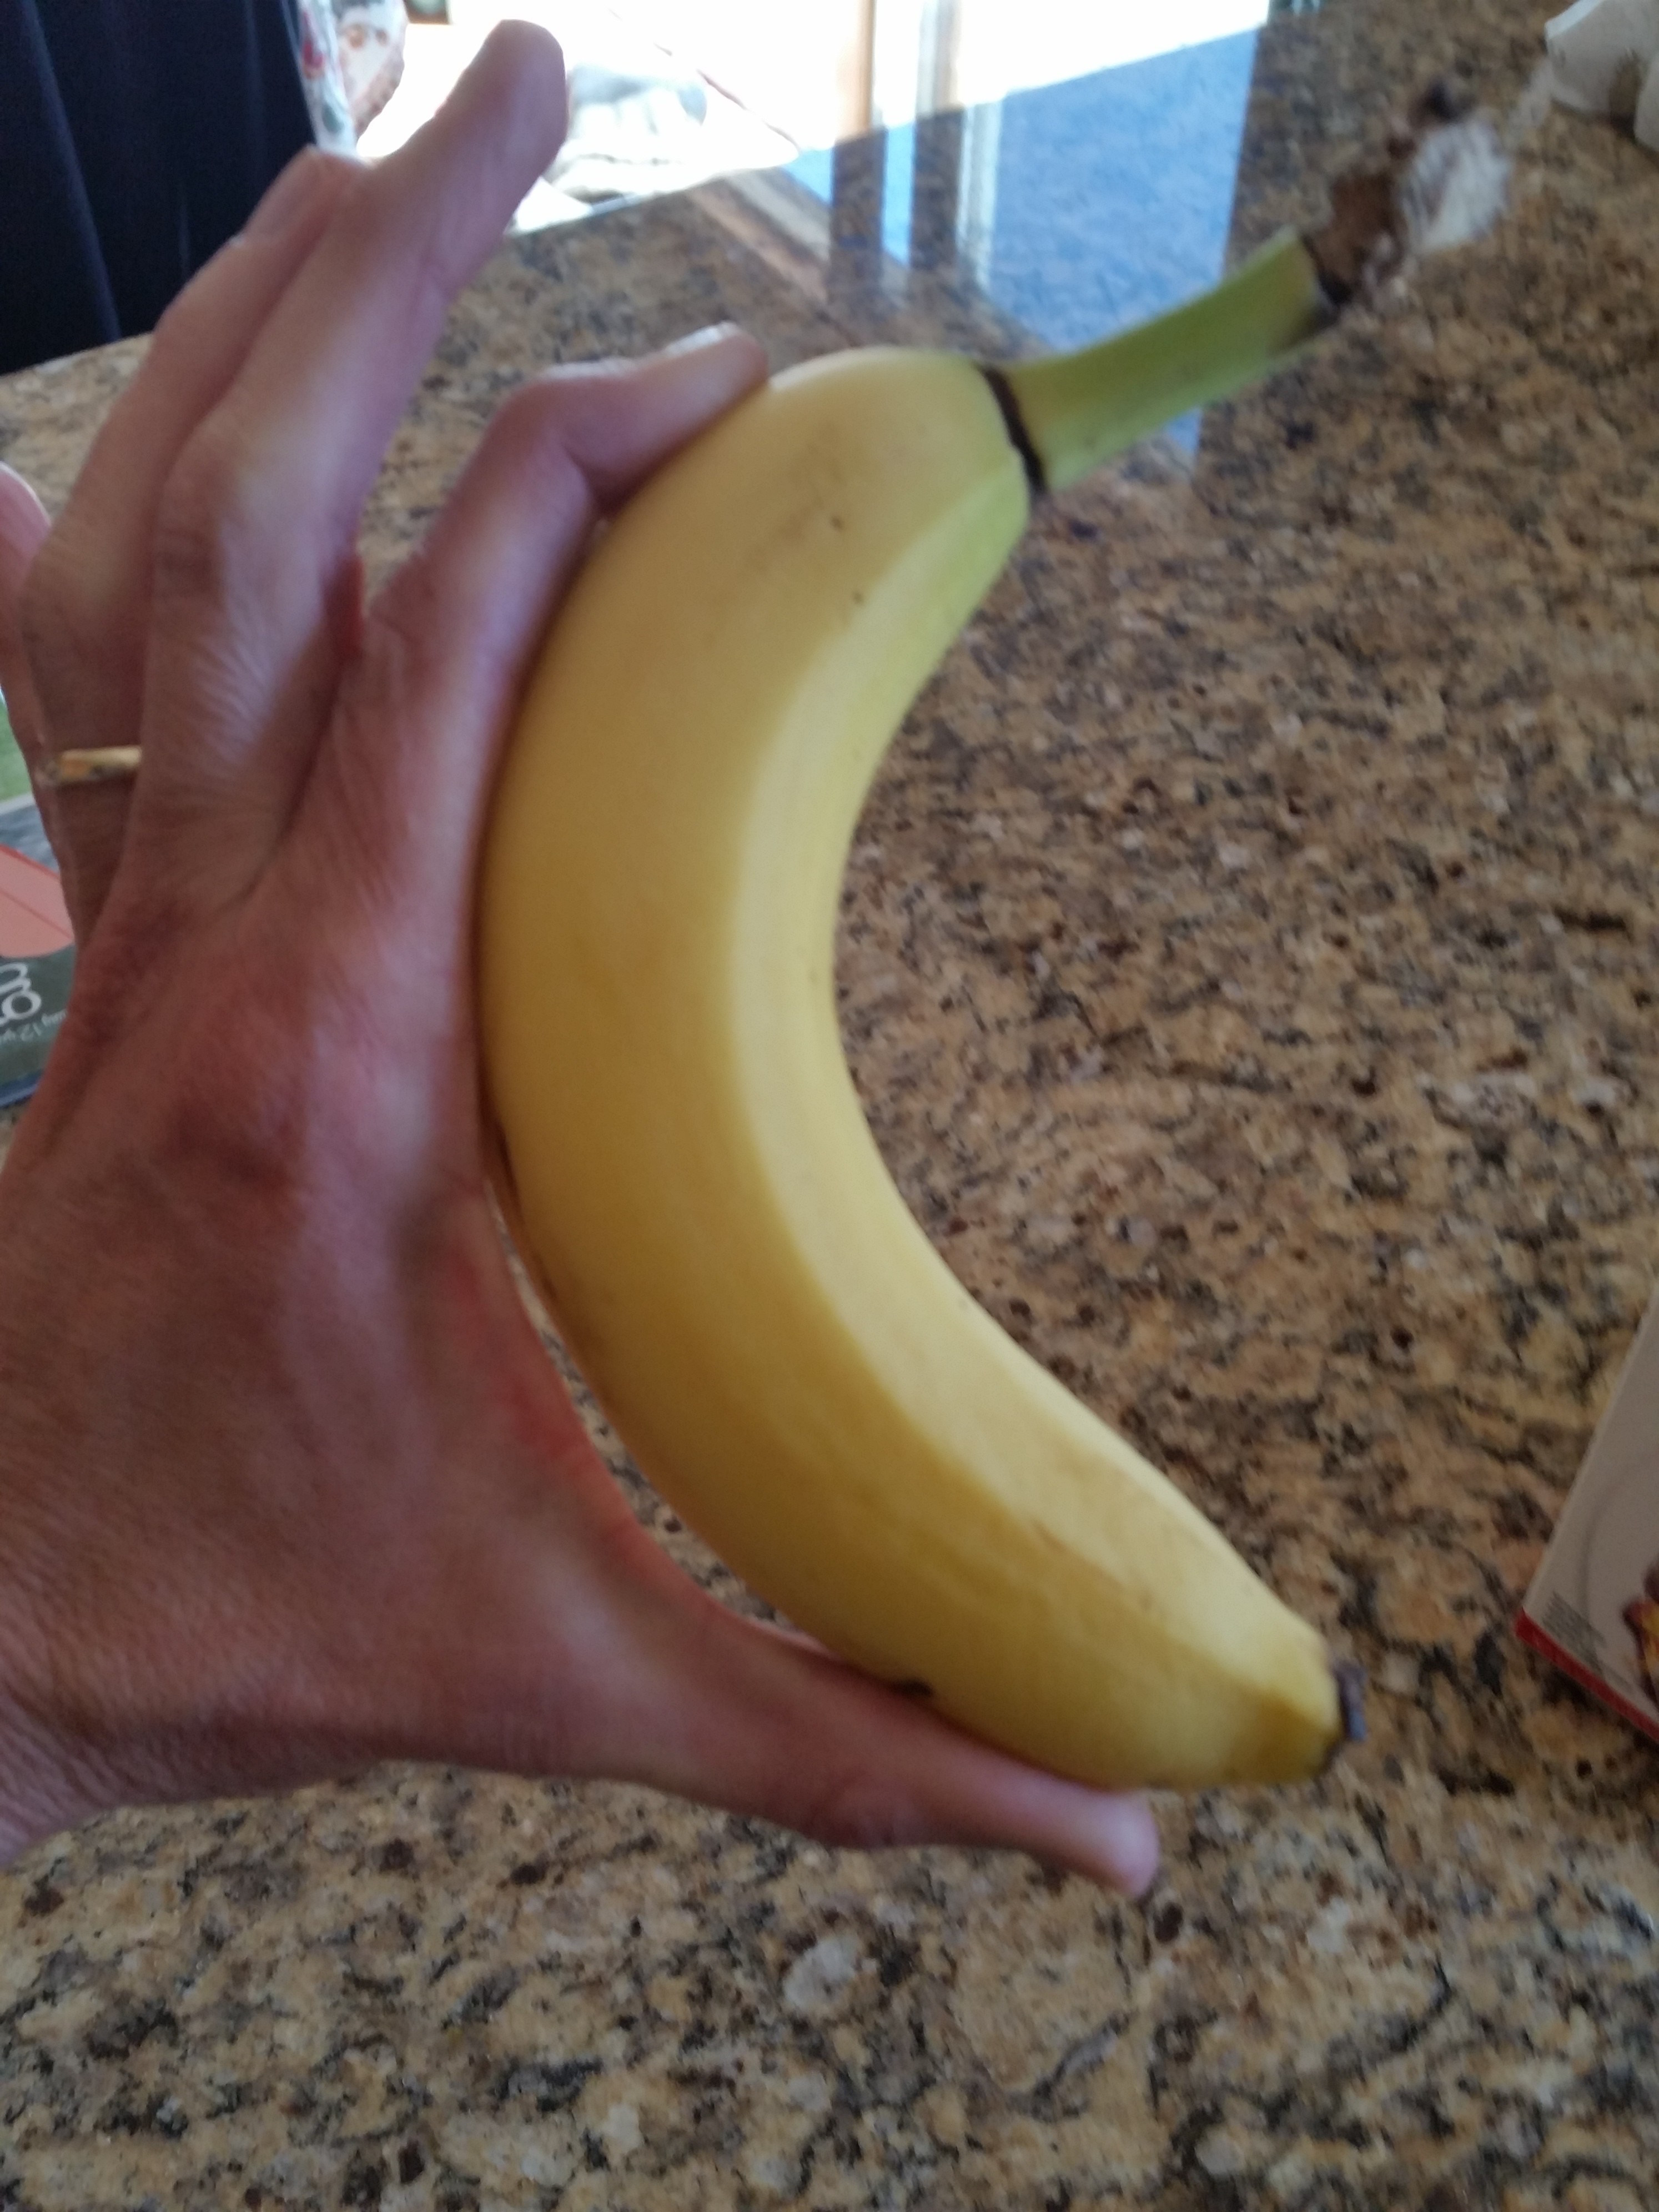 A good way to measure the right banana for you